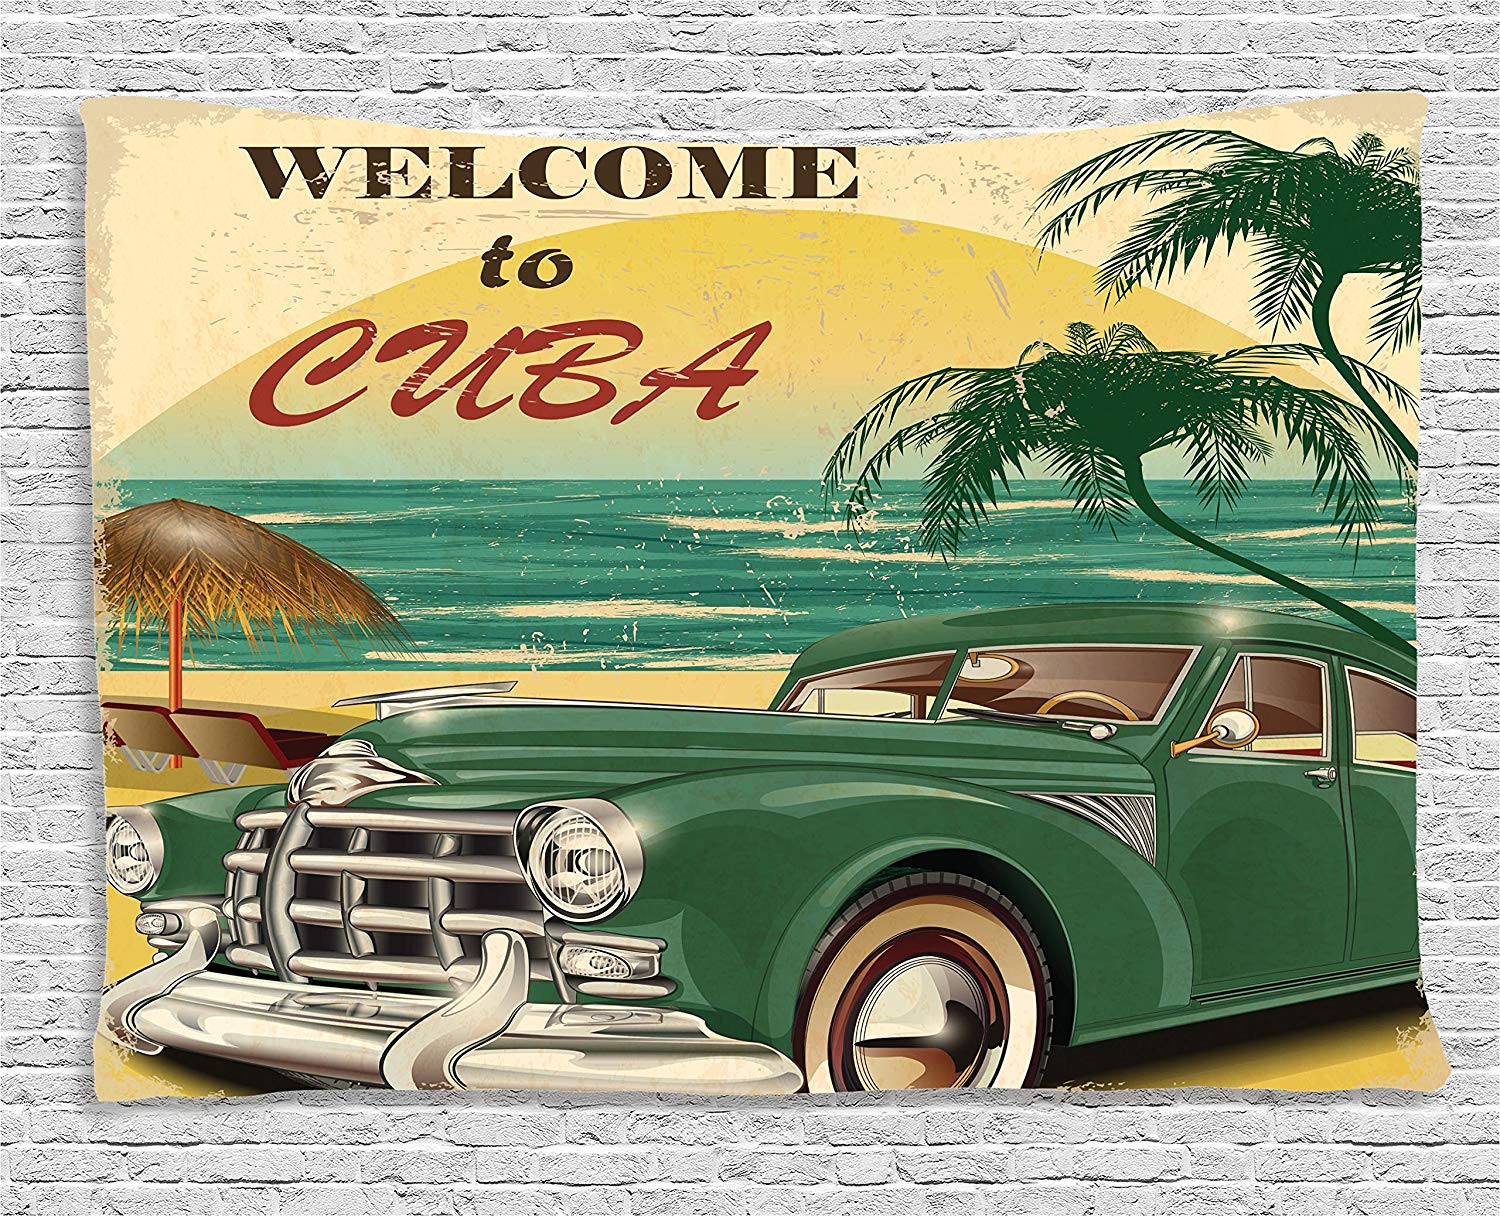 Beach Tapestry 1950s Decor Nostalgic Welcome to Cuba Artsy Print with Classic Car Beach Tapestry Ocean and Palm Trees Bedroom image